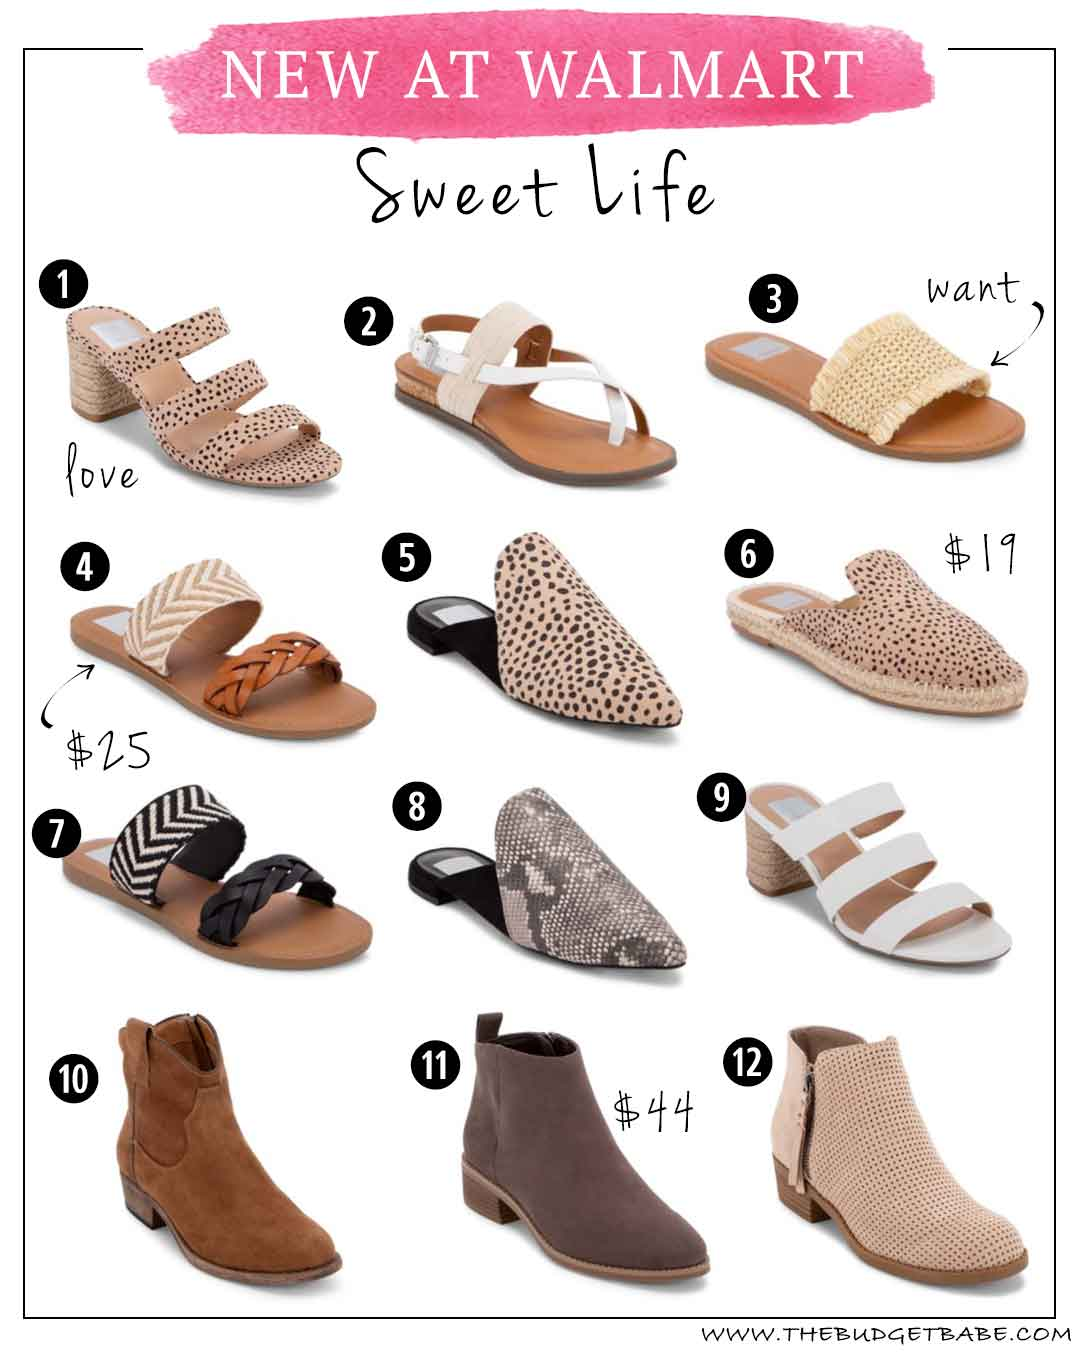 New at Walmart | Sweet Life Shoes from $19